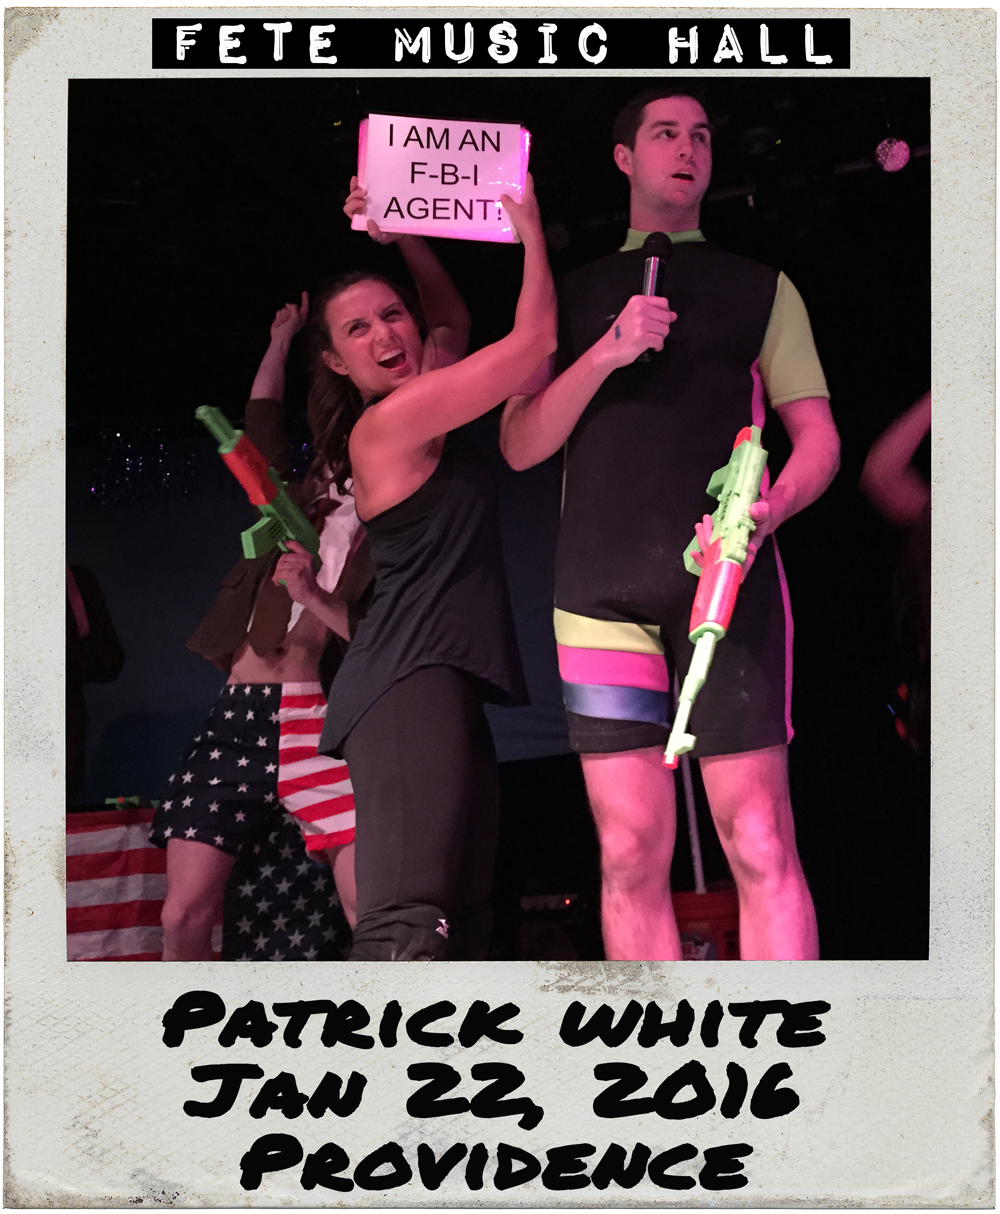 01_22_16_Patrick-White_Providence.png